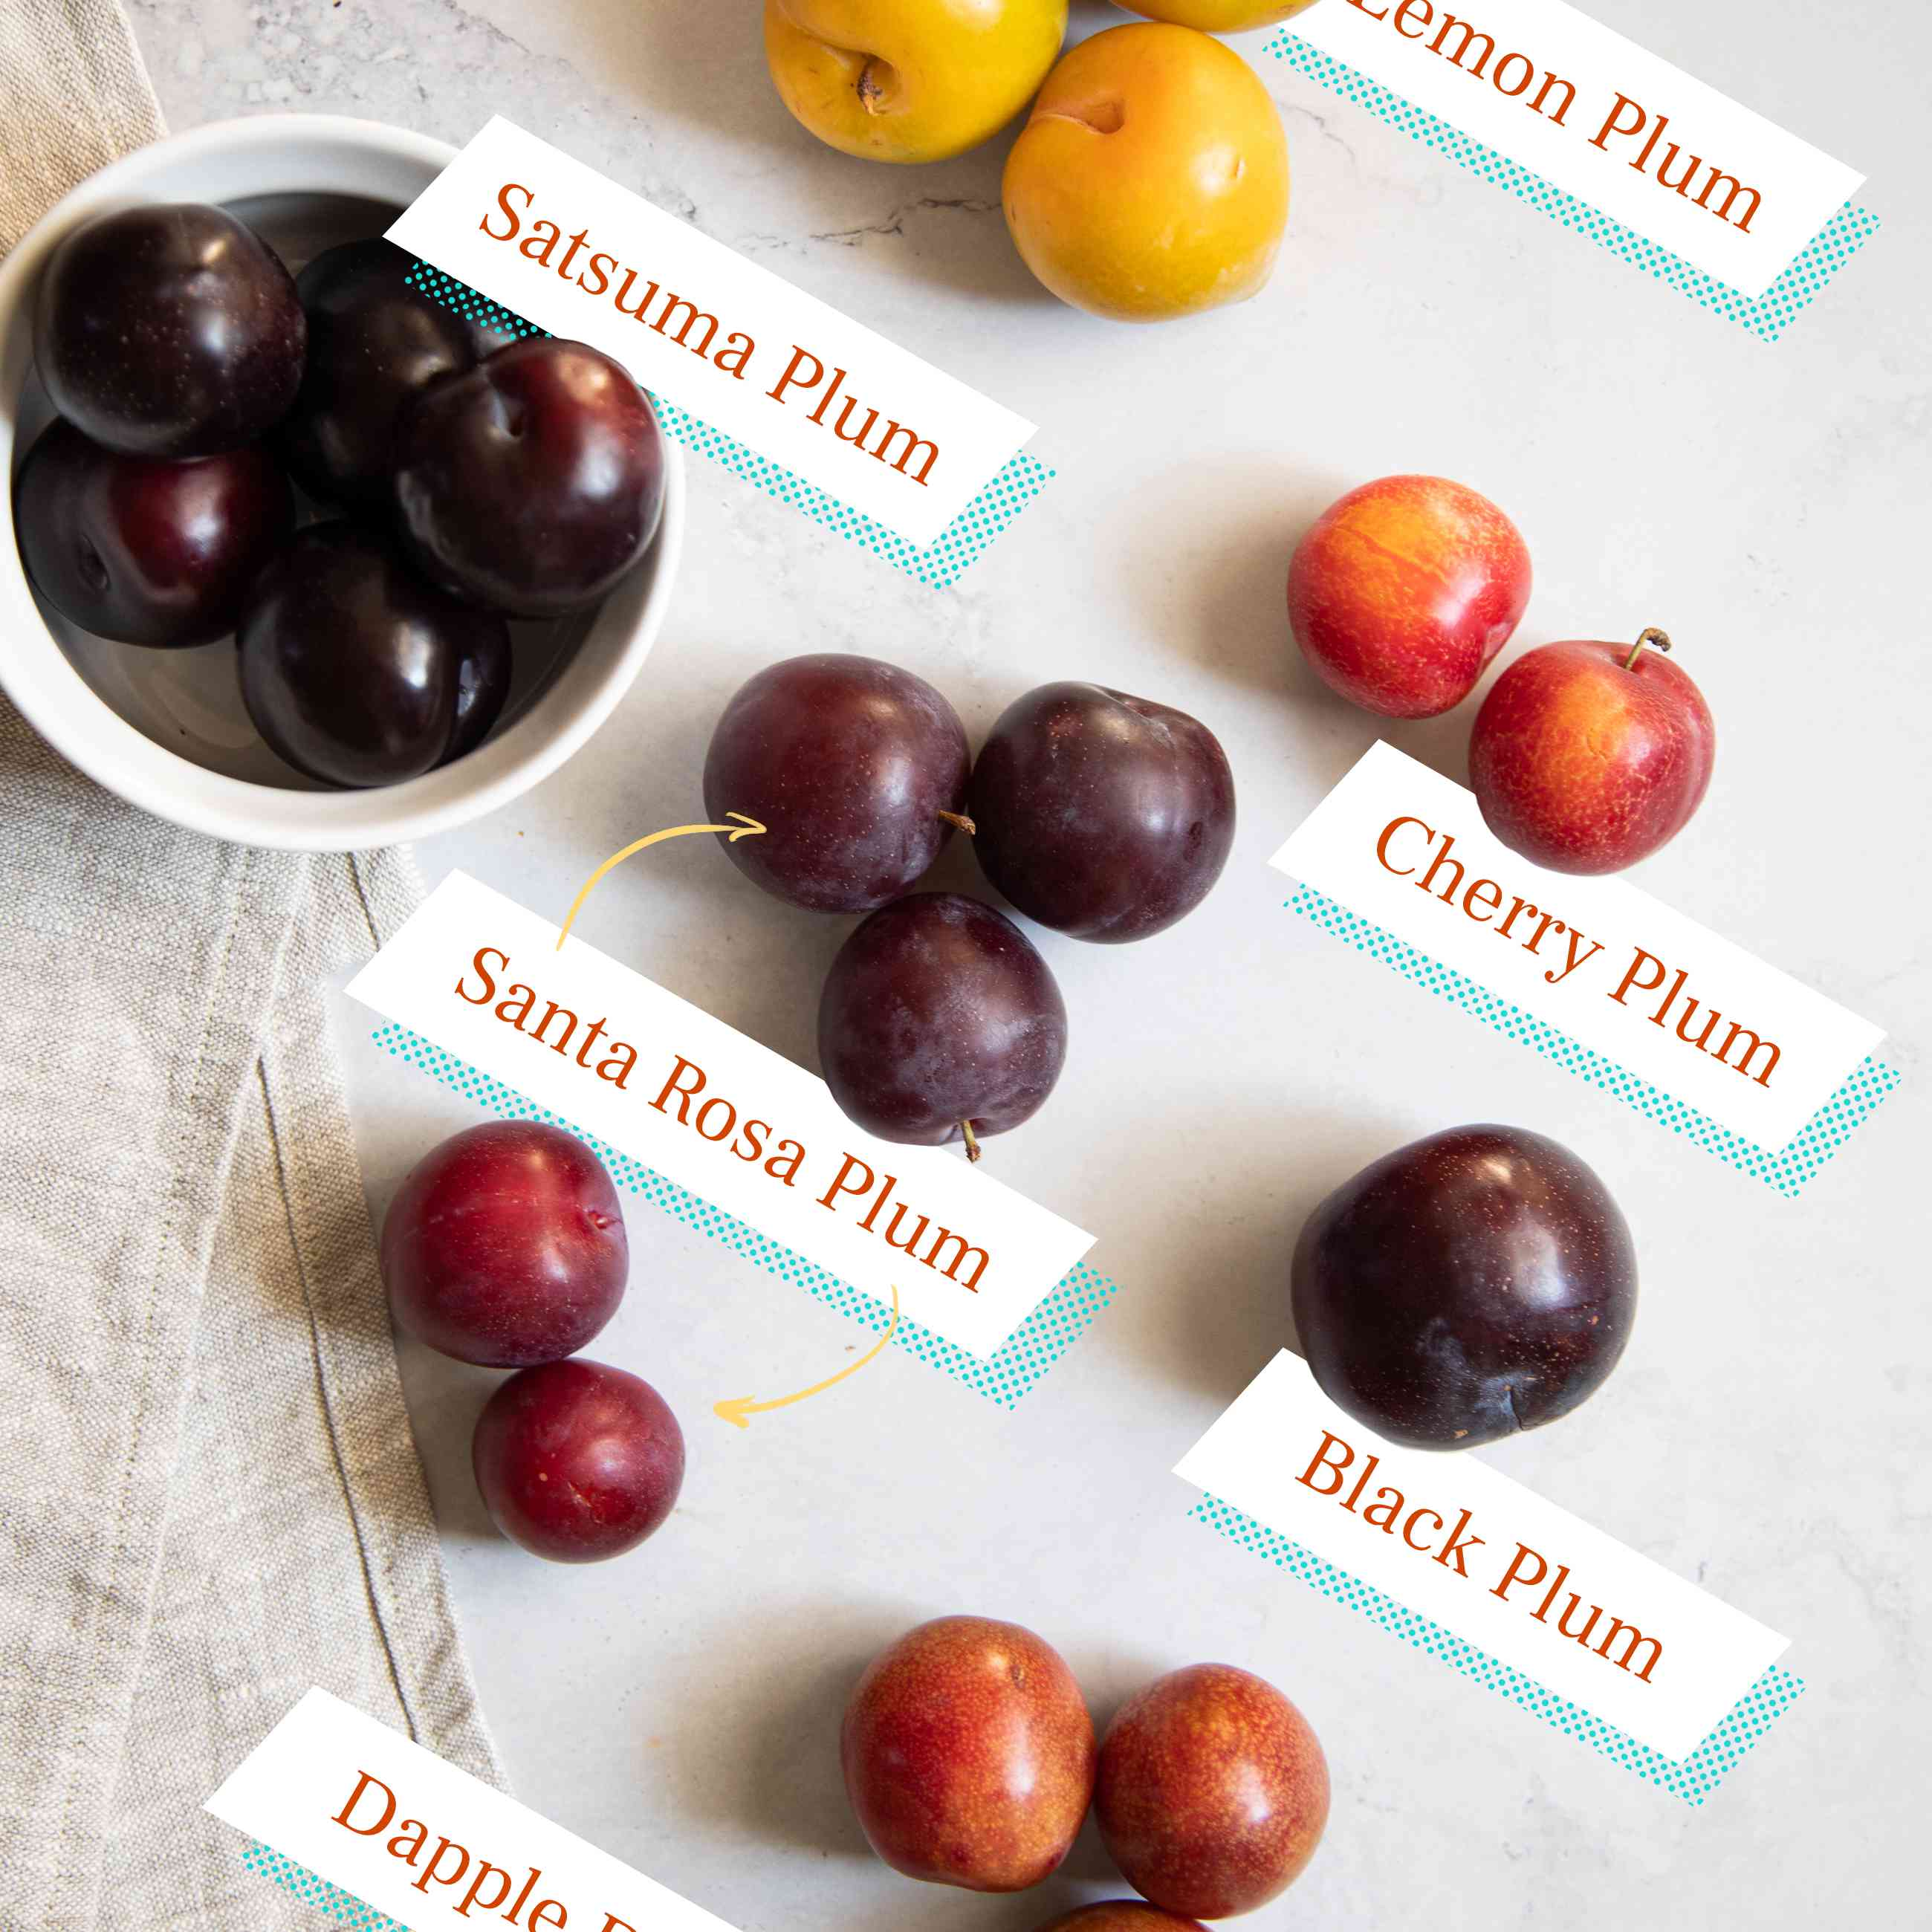 Types of plums with labels